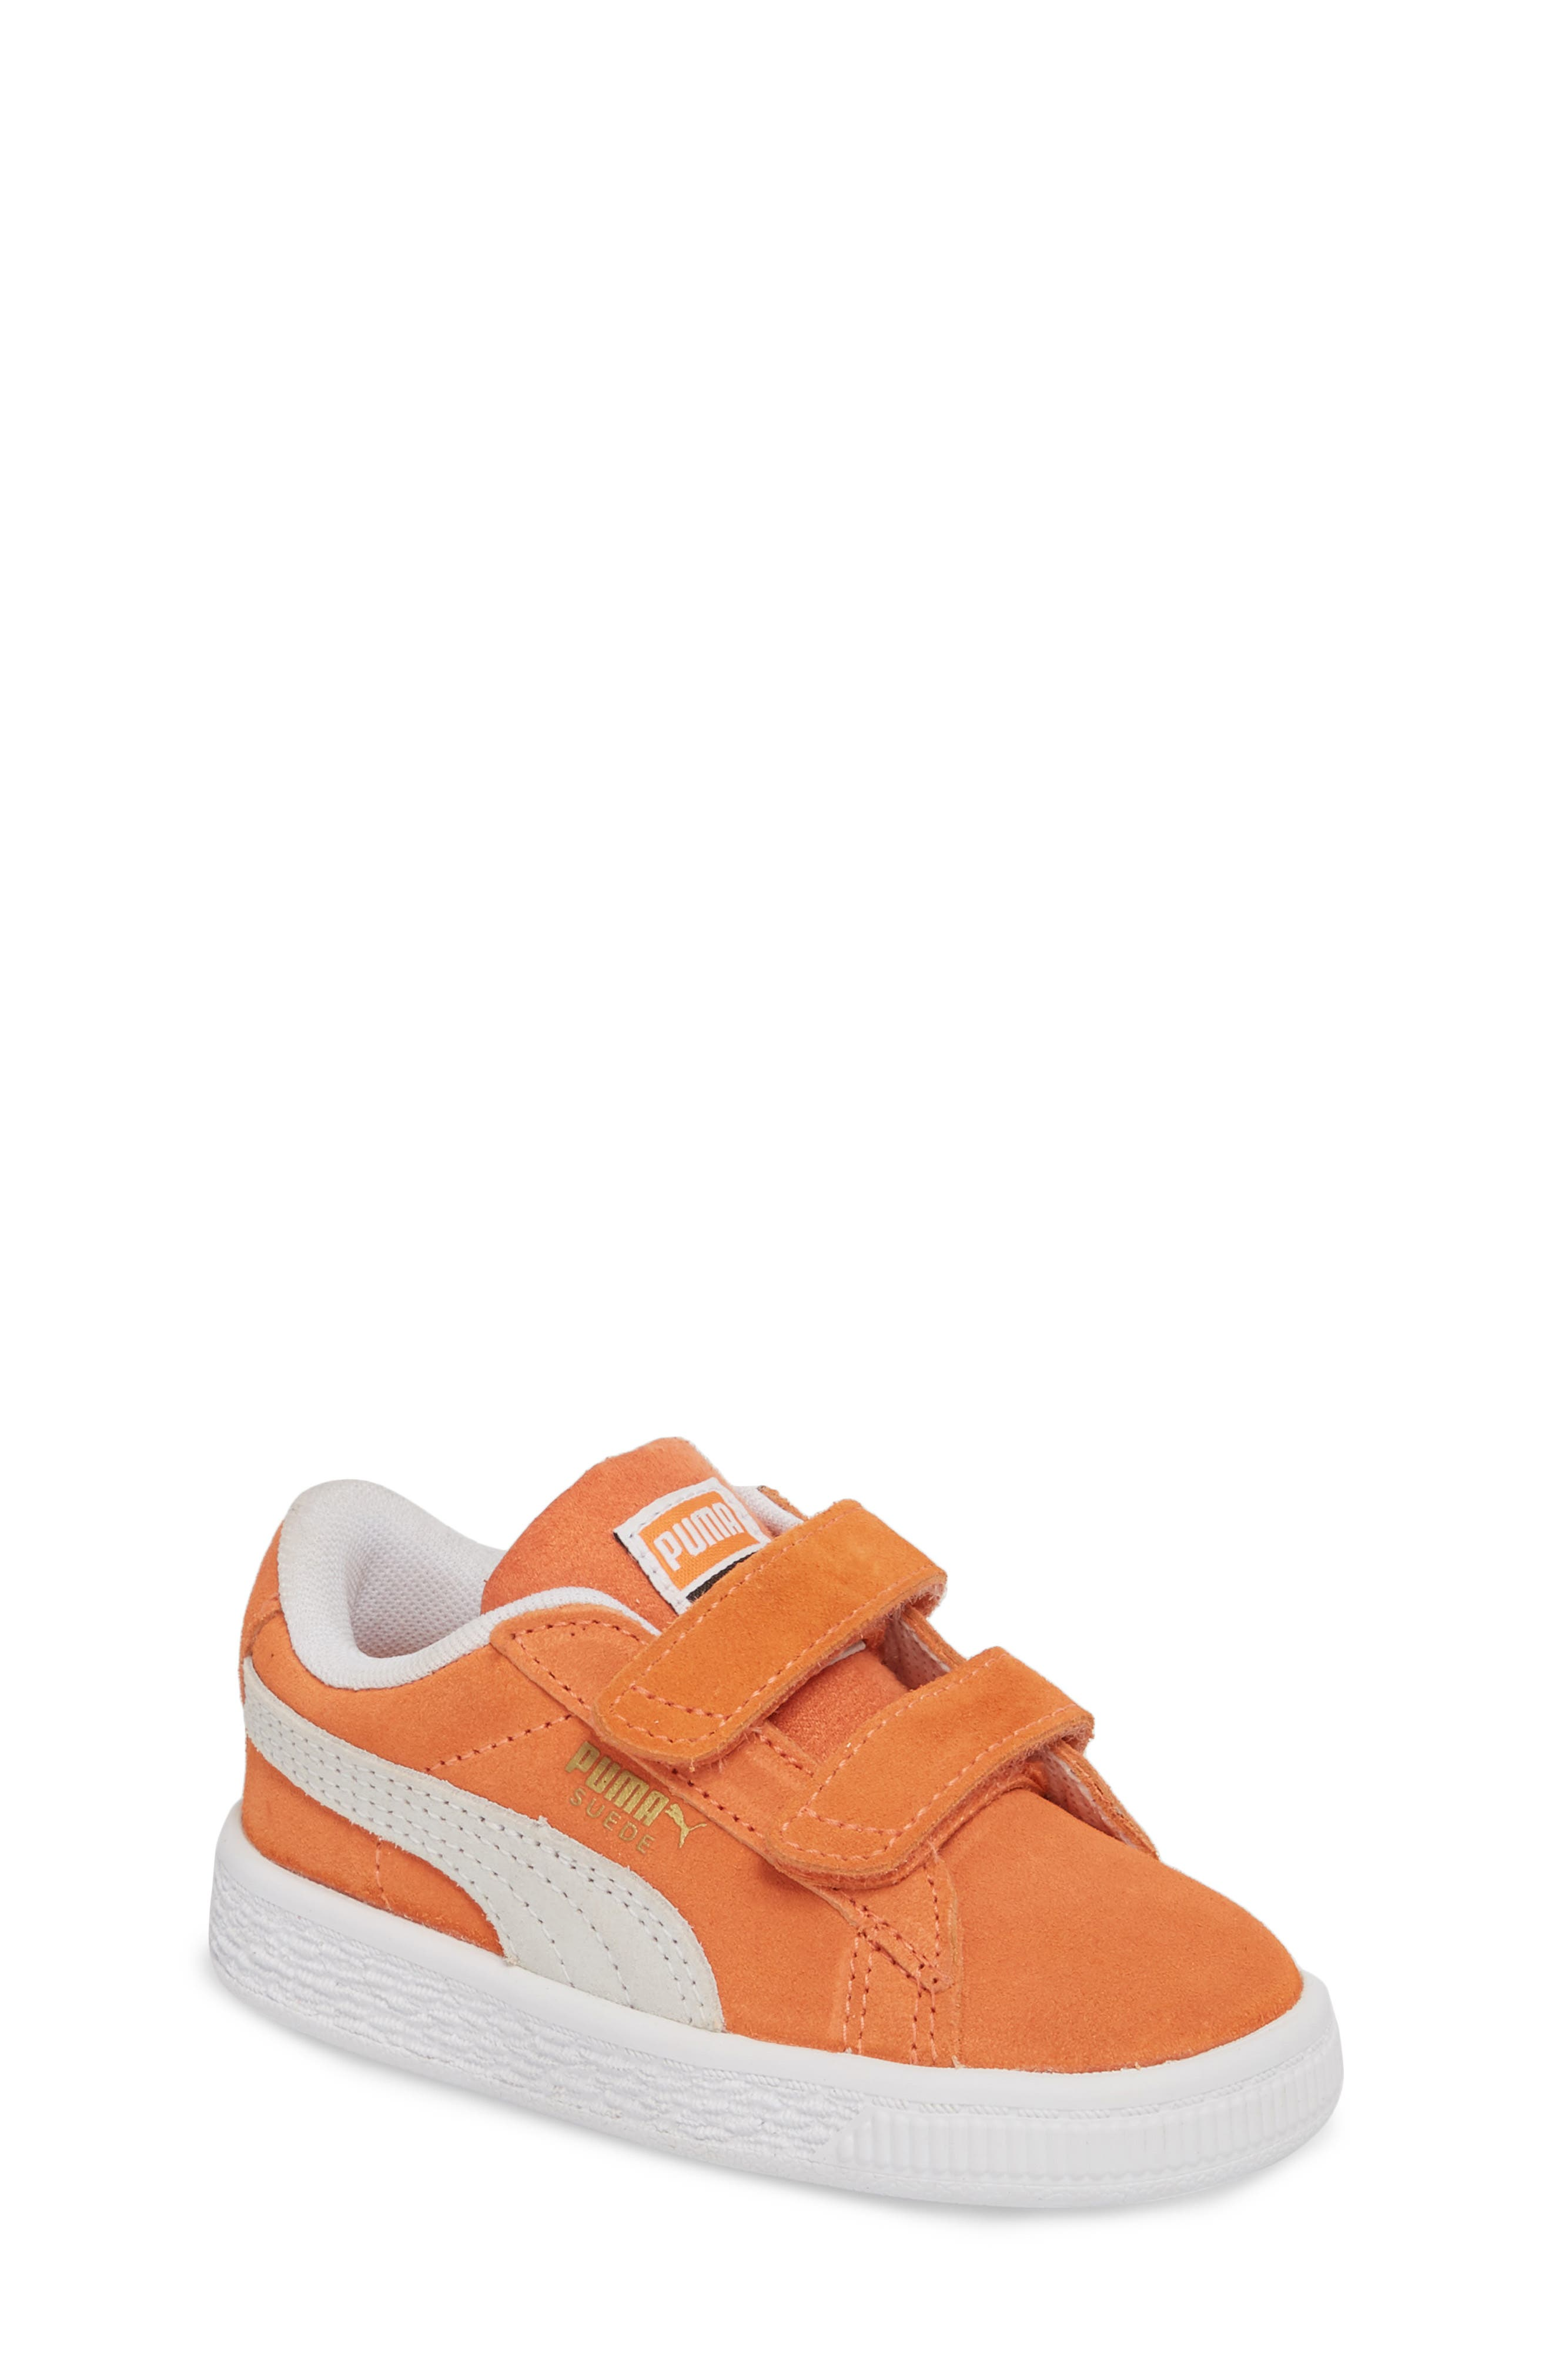 PUMA Suede Classic Sneaker (Baby, Walker, Toddler, Little Kid & Big Kid